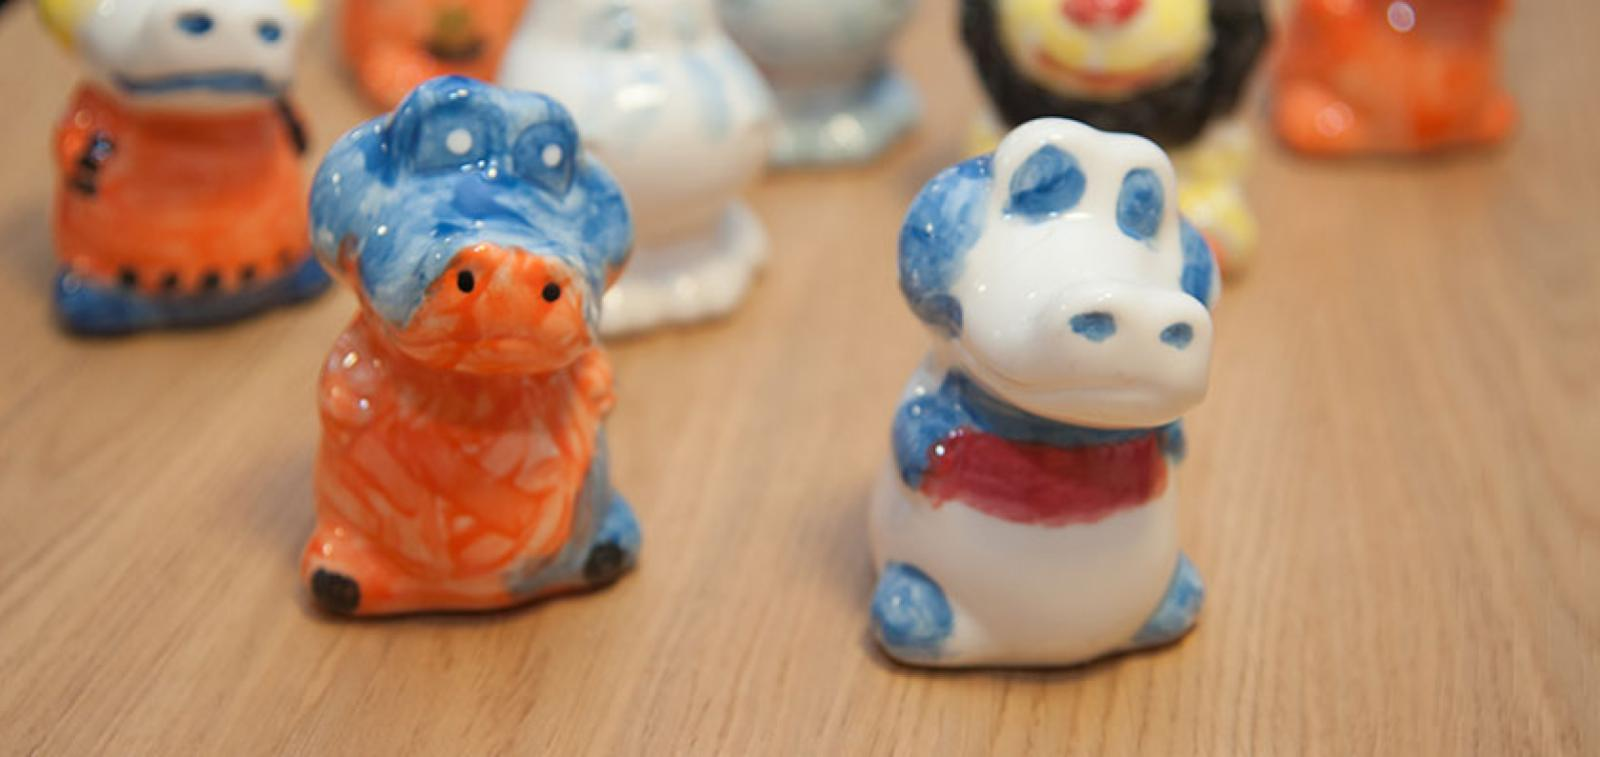 A selection of the pottery creatures painted by residents.